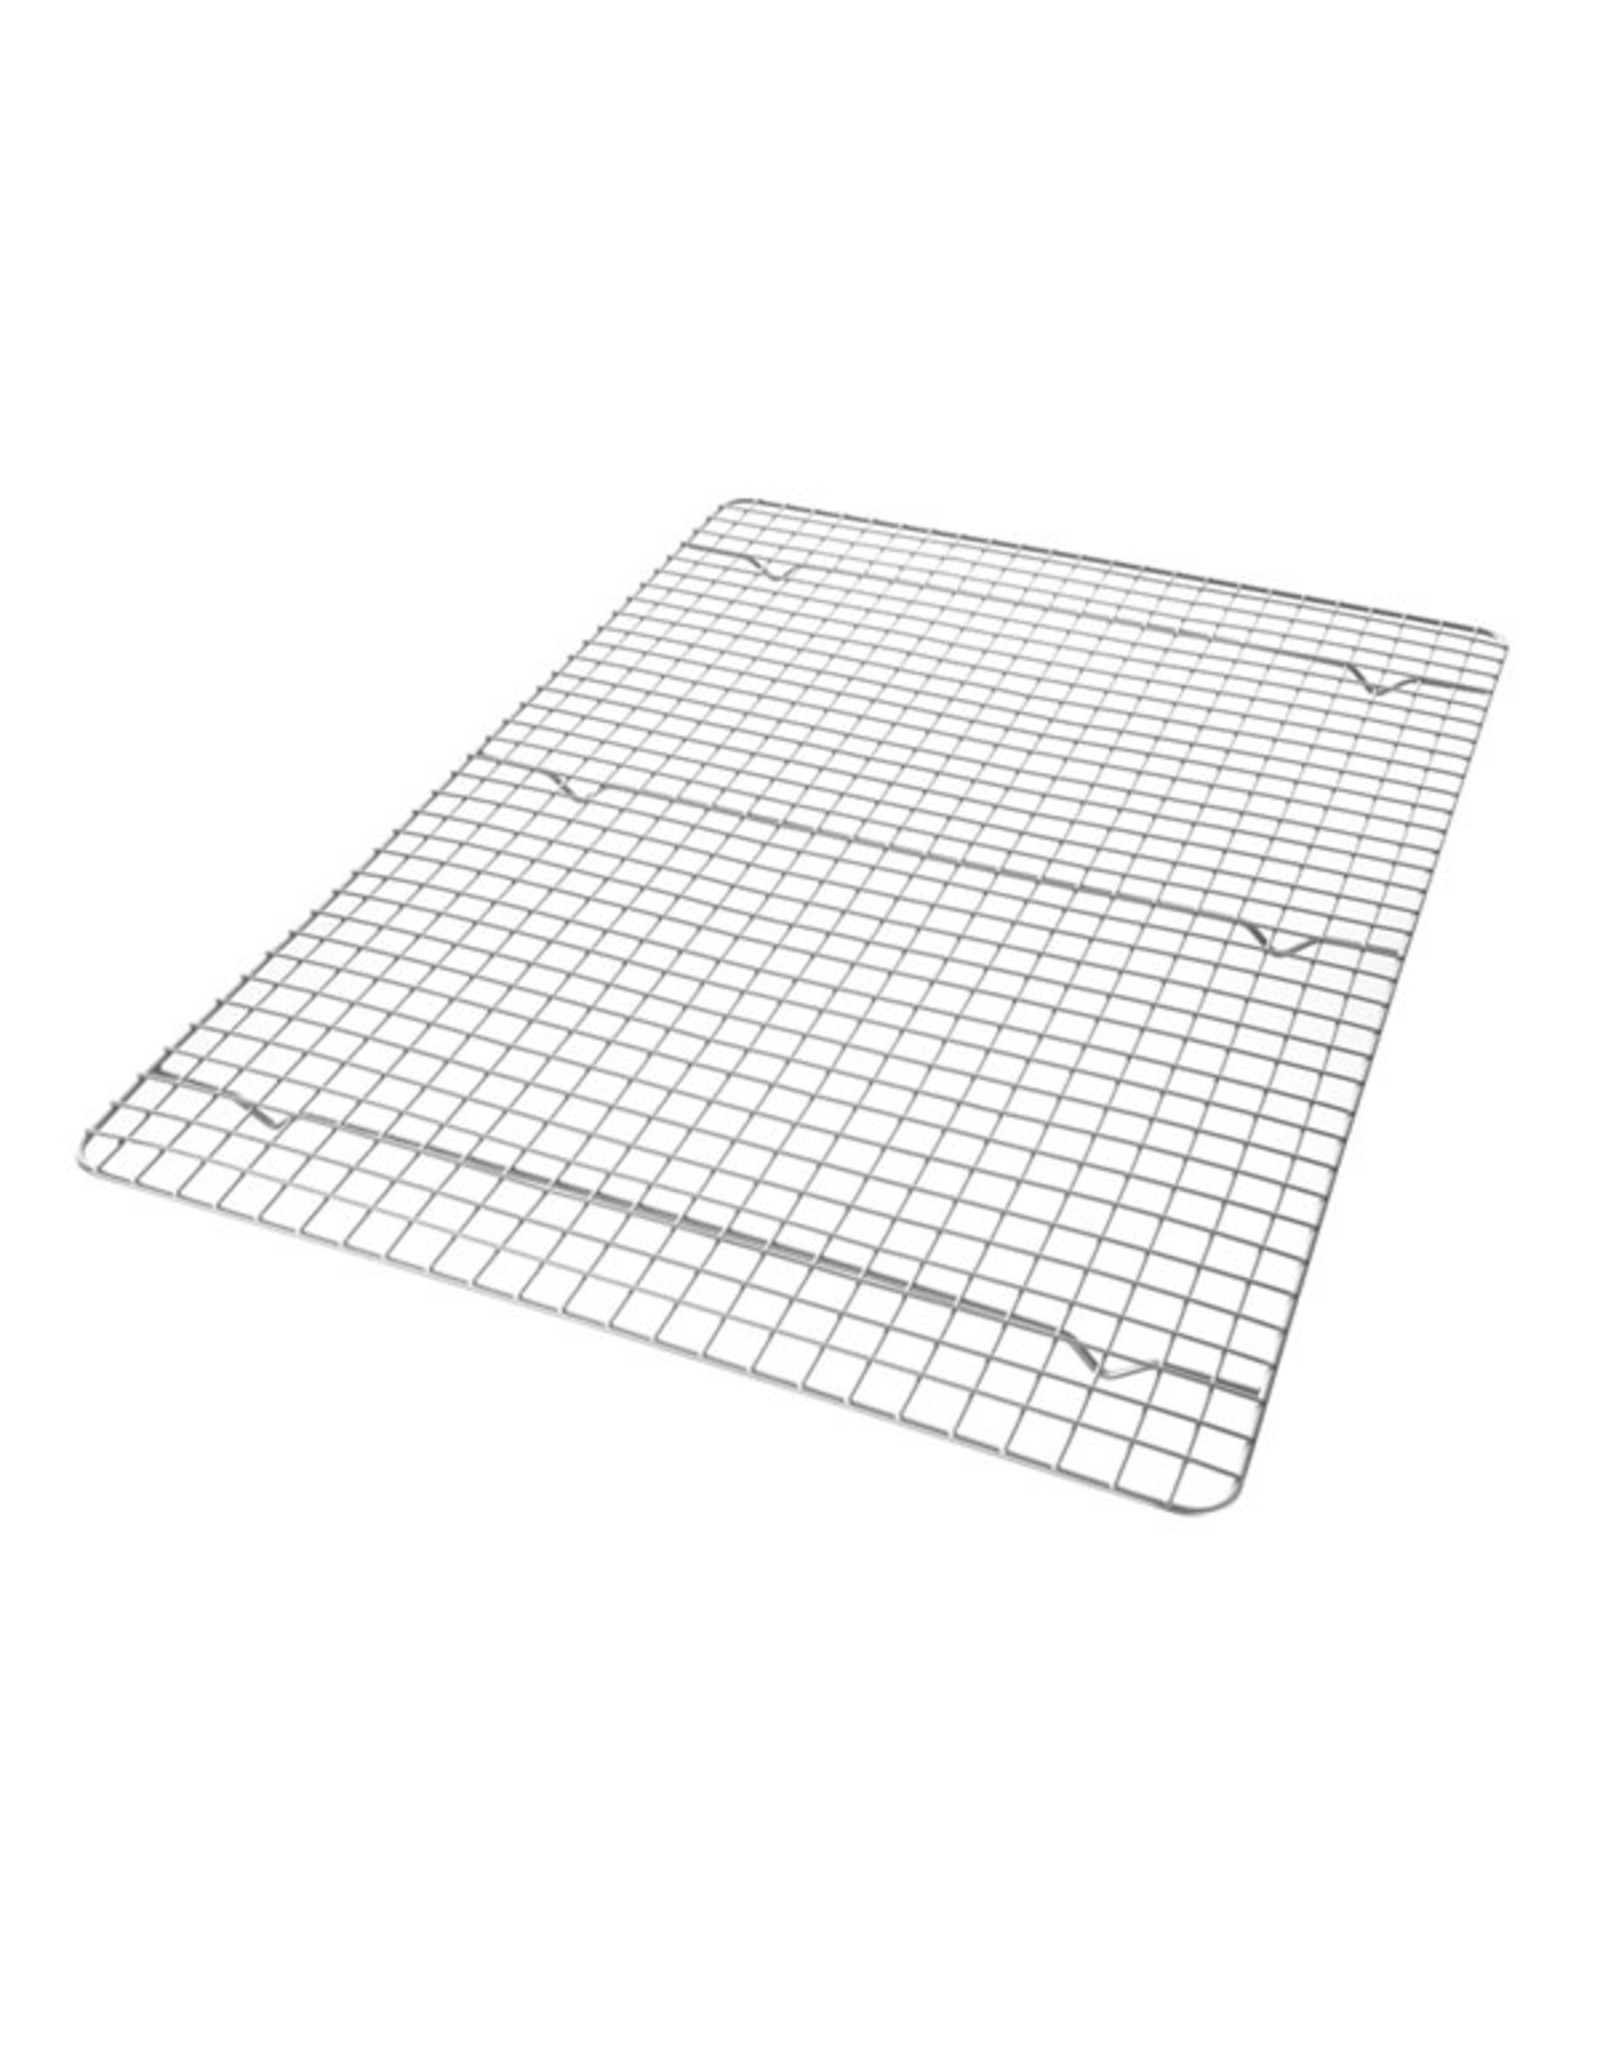 USA Pan 1/2 Cooling Rack, 12x17